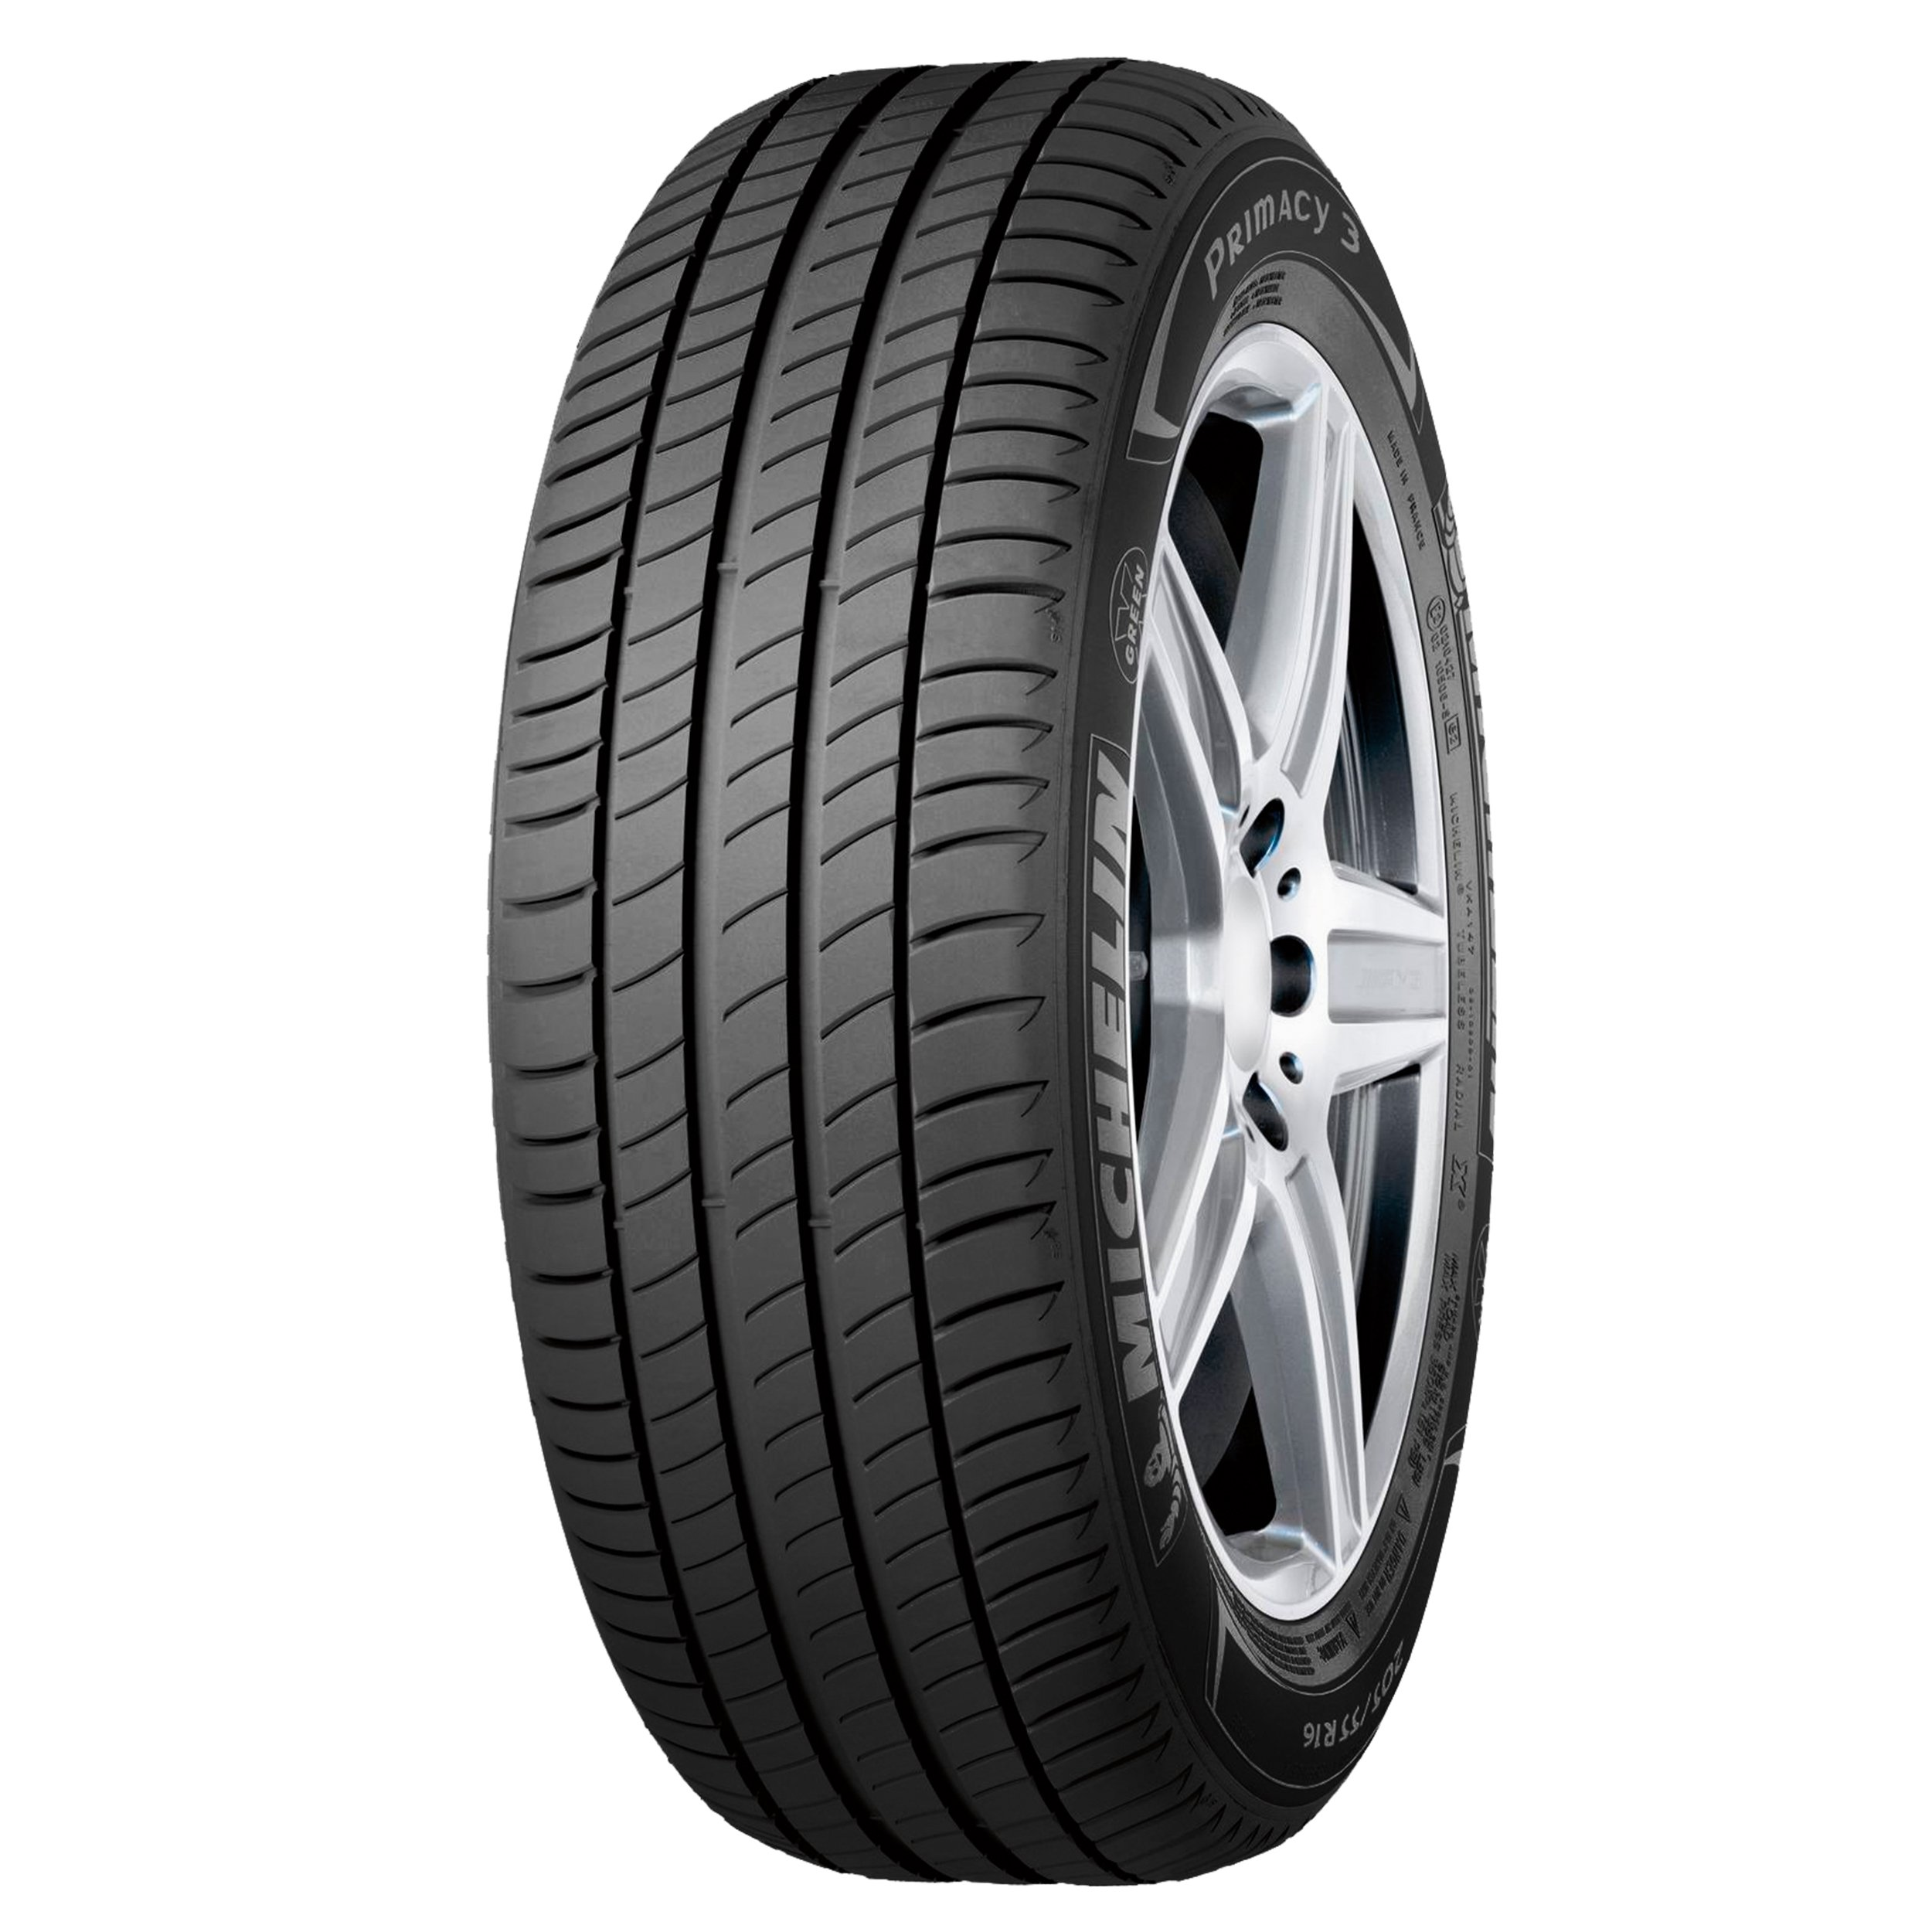 Michelin Primacy 3 Touring Radial Tire - 225/55R17 97Y